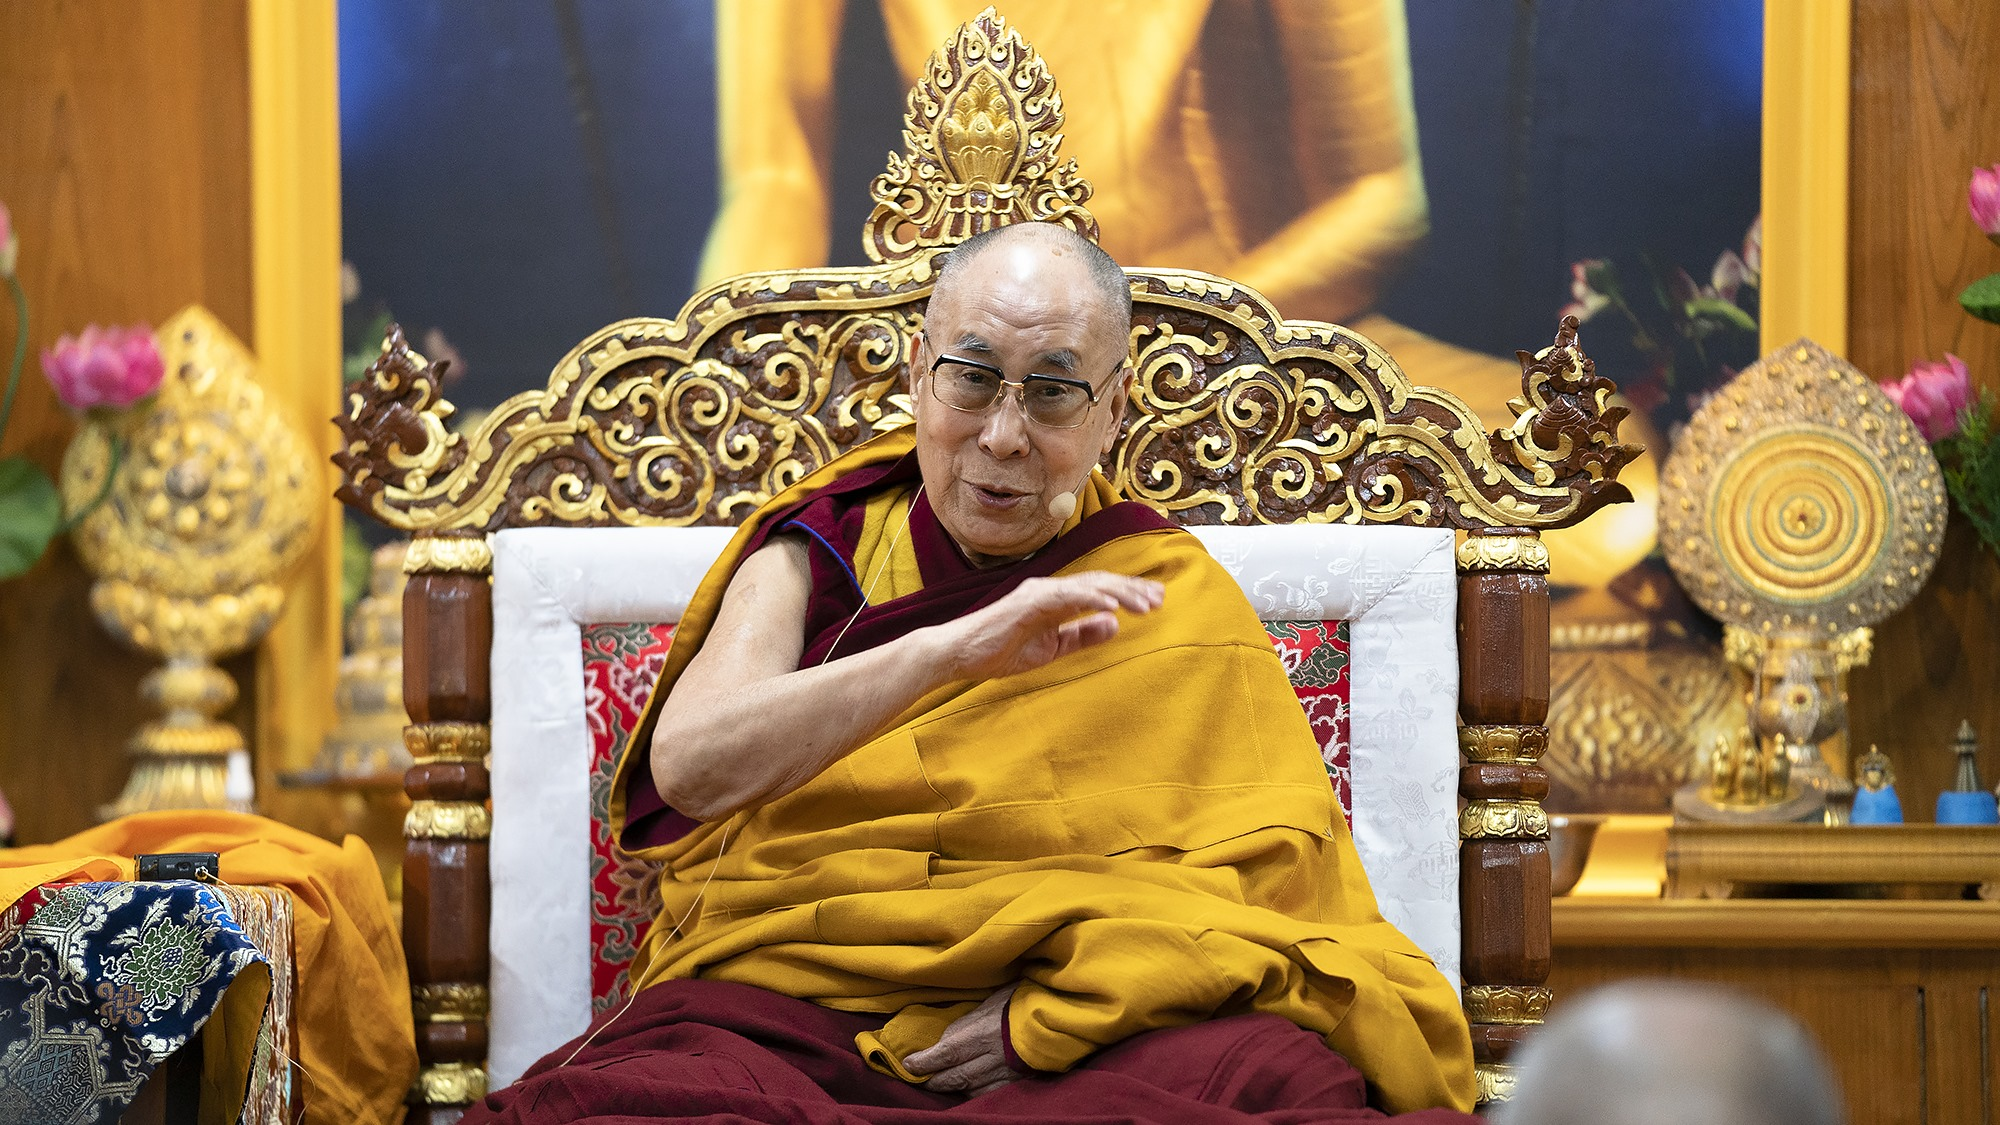 Sad over loss of life in Uttarakhand disaster: Dalai Lama